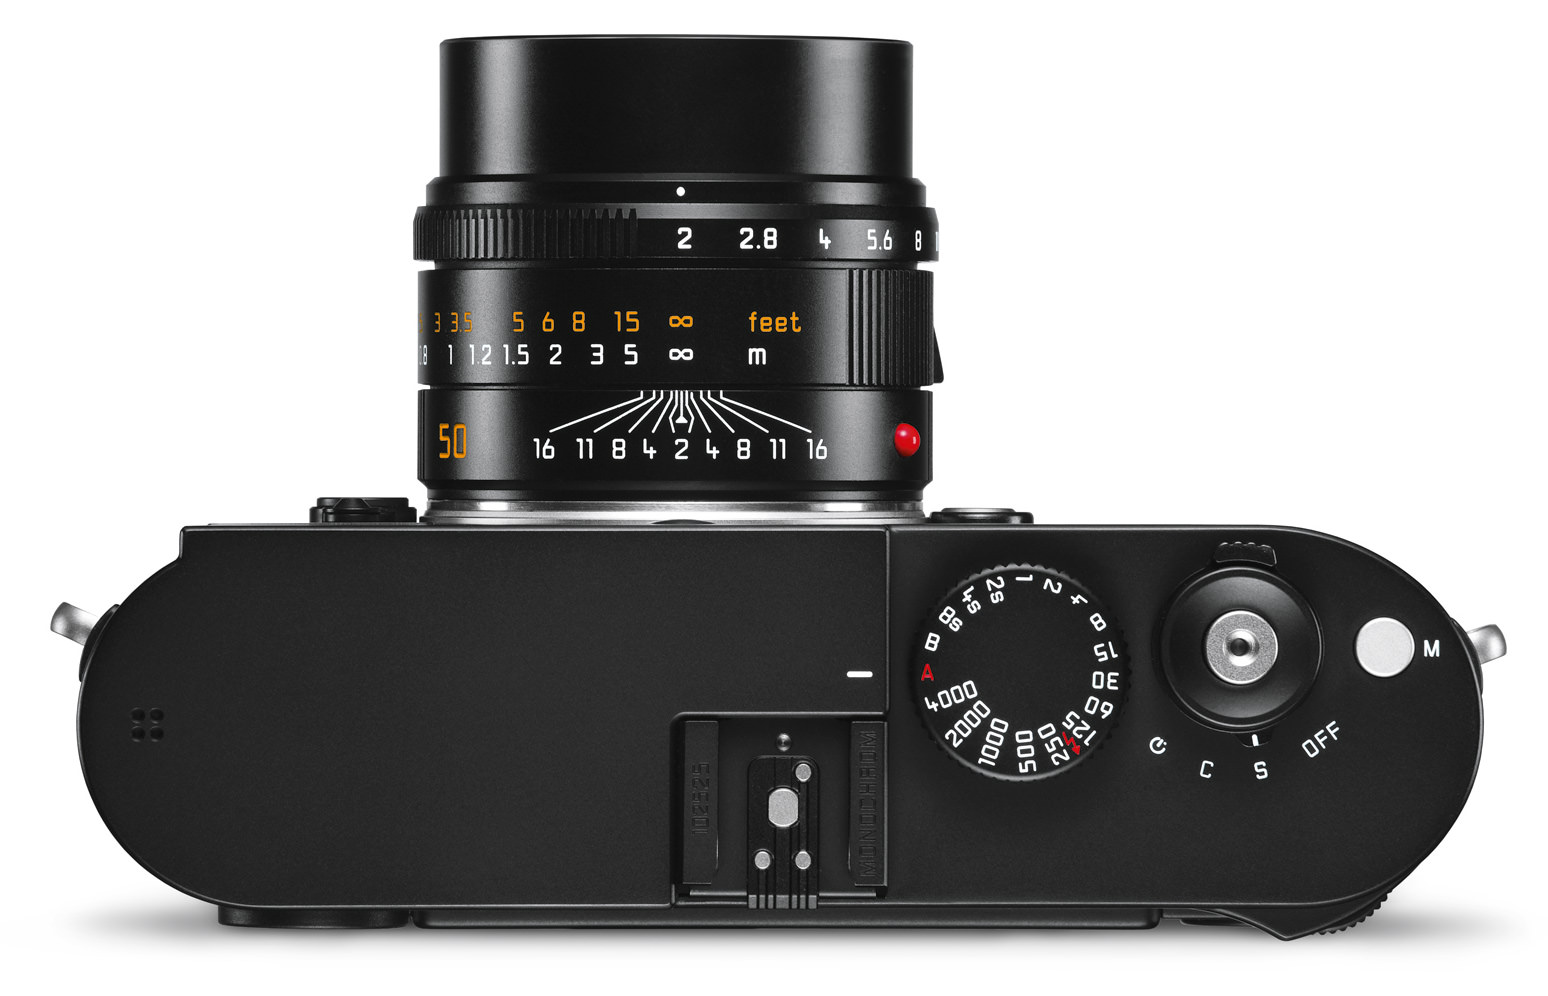 leica monochrom m type 246 rangefinder announced. Black Bedroom Furniture Sets. Home Design Ideas